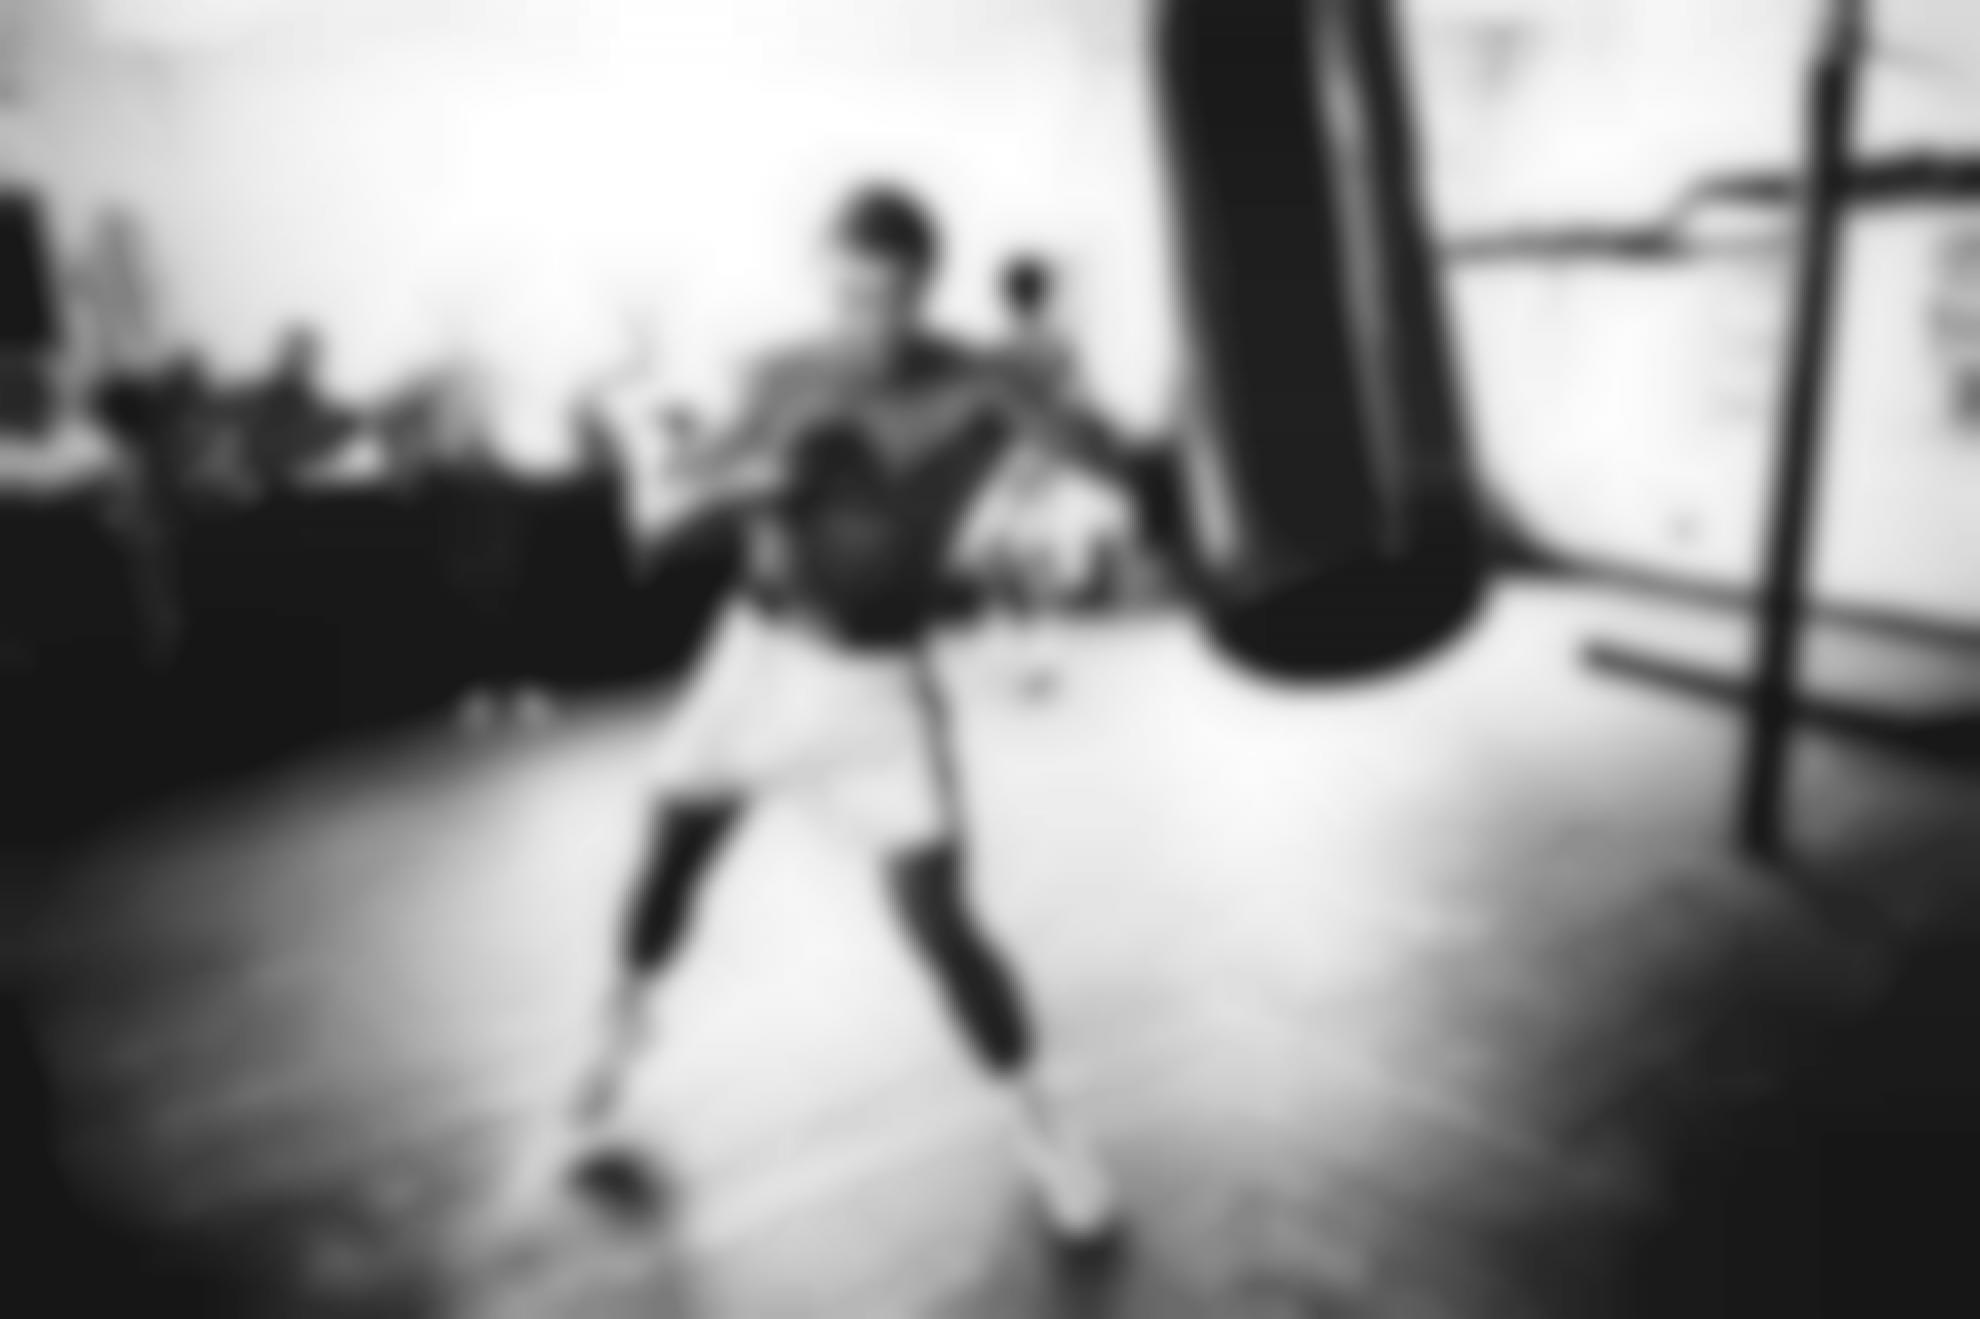 Chris Smith-On The Heavy Bag (Muhammad Ali Training At The 5Th Street Gym, Before His First Fight With Joe Frazier)-1971